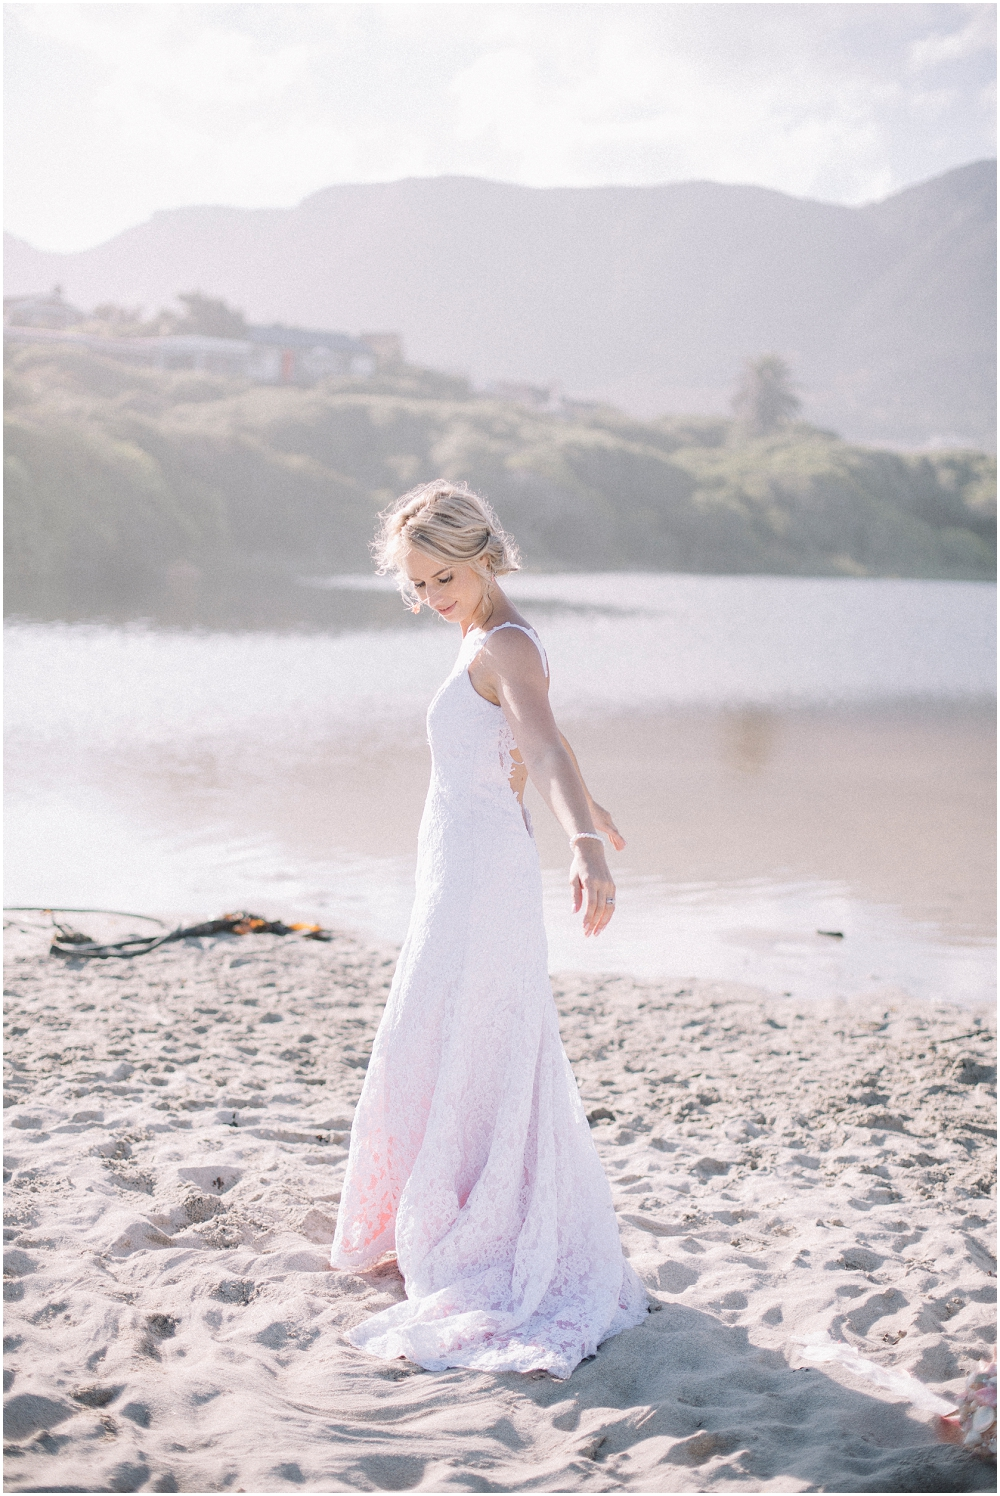 Western Cape Wedding Photographer Ronel Kruger Photography Cape Town_4044.jpg